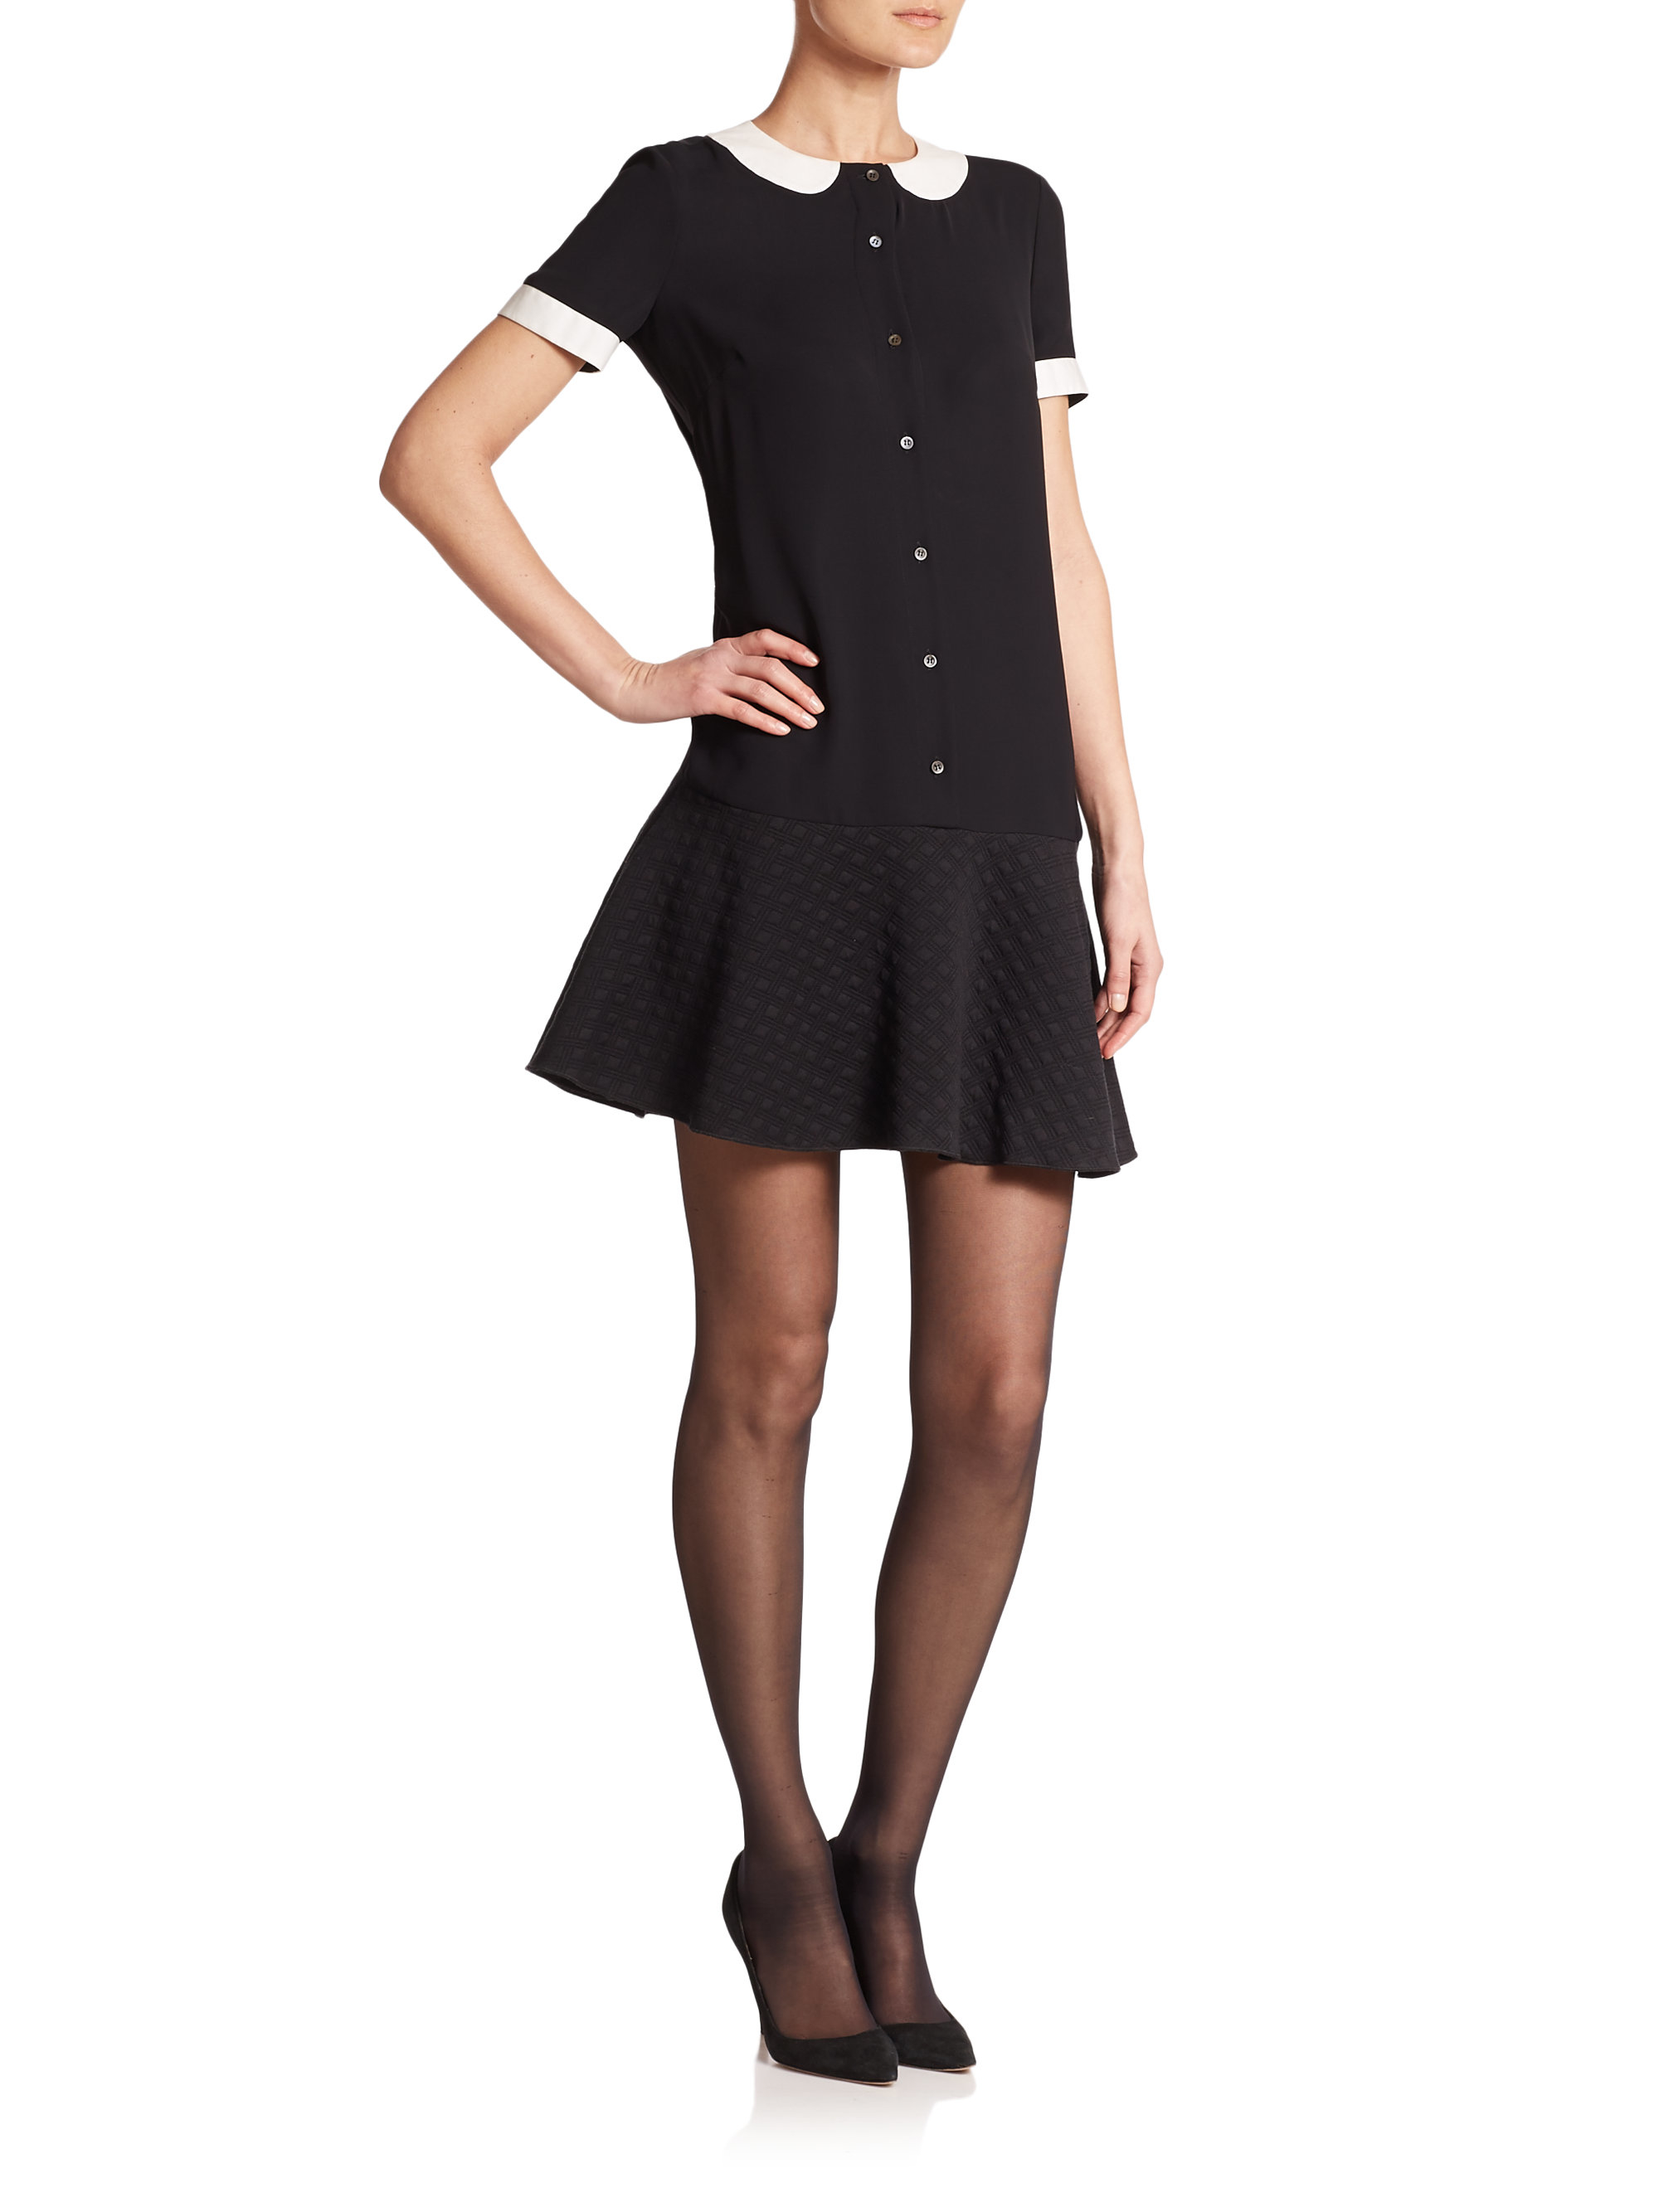 Black dress with white peter pan collar - Gallery